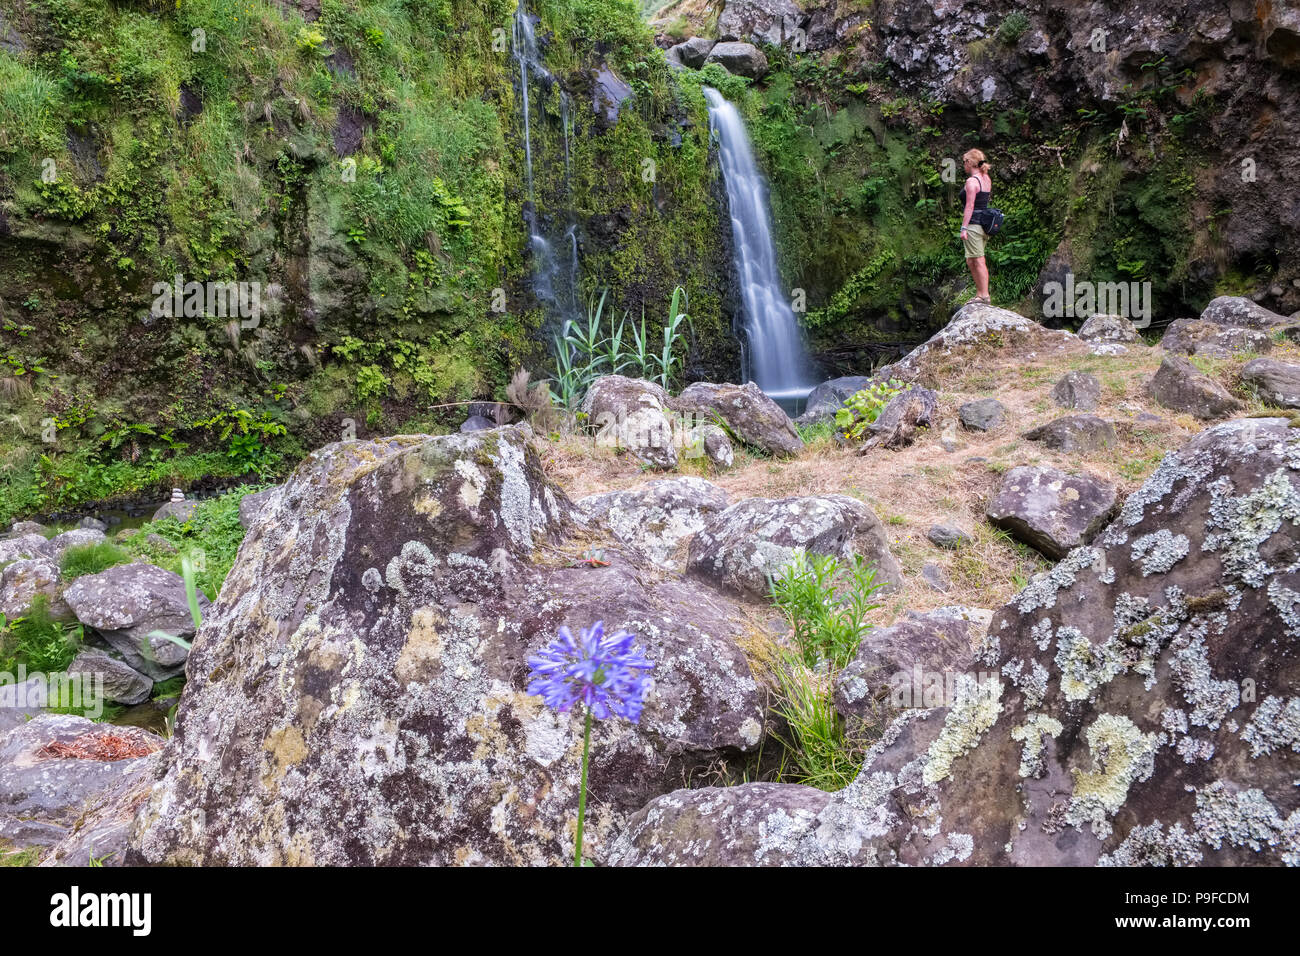 A woman walker at a waterfall on the north coast  of Sao Miguel, The Azores - Stock Image